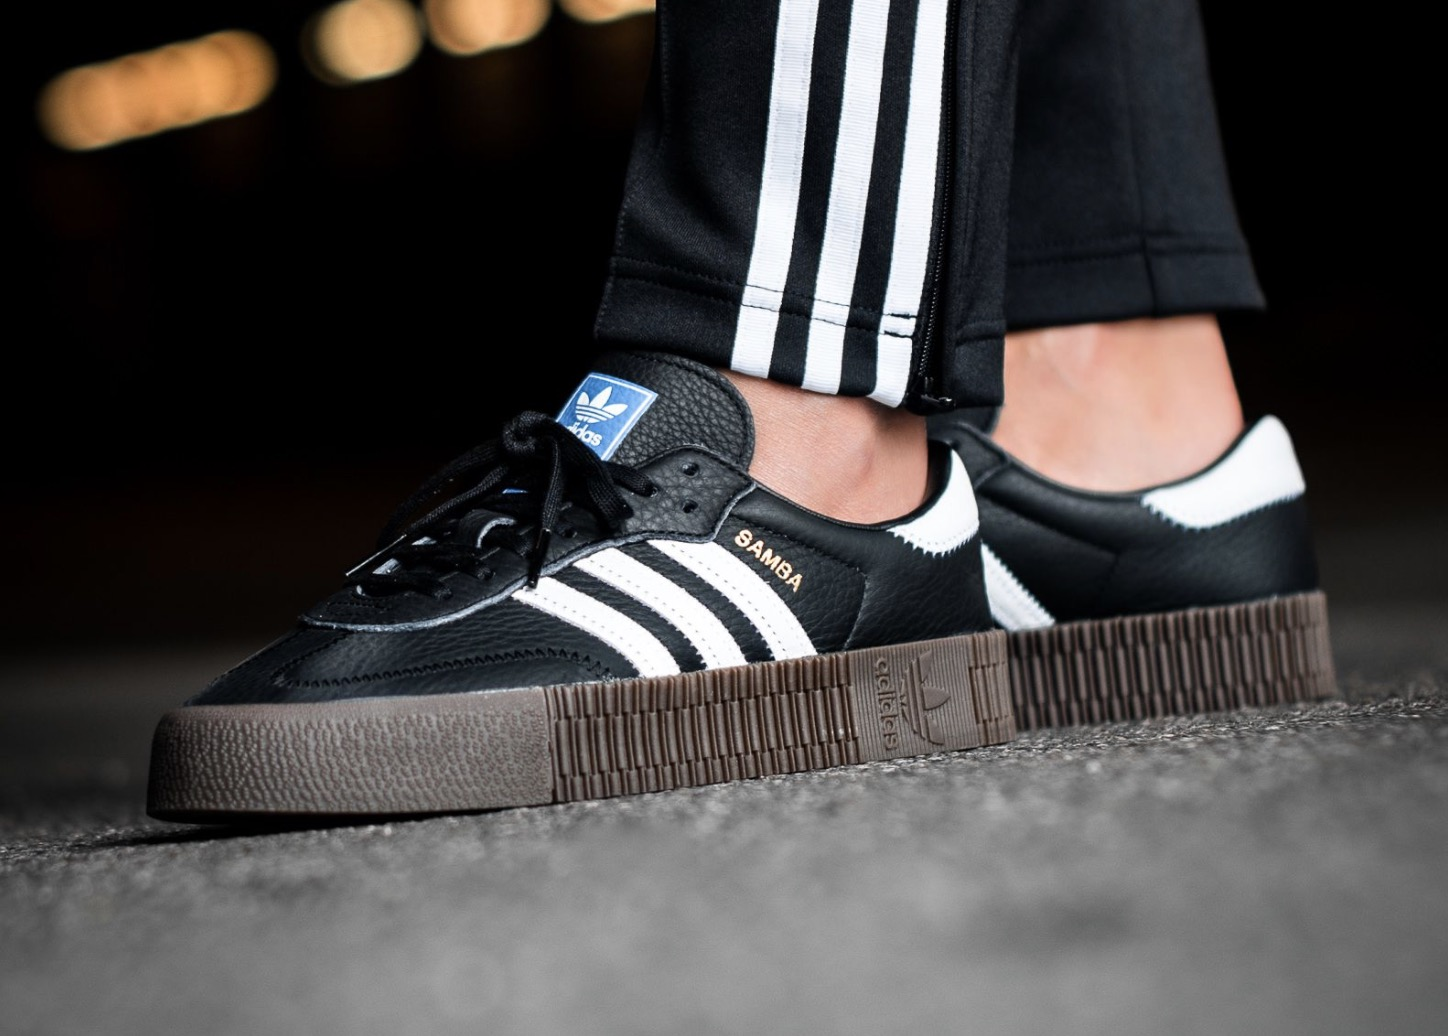 60bce7e99 Get 30% Off THESE adidas Sambarose Silhouettes With Cyber Monday ...